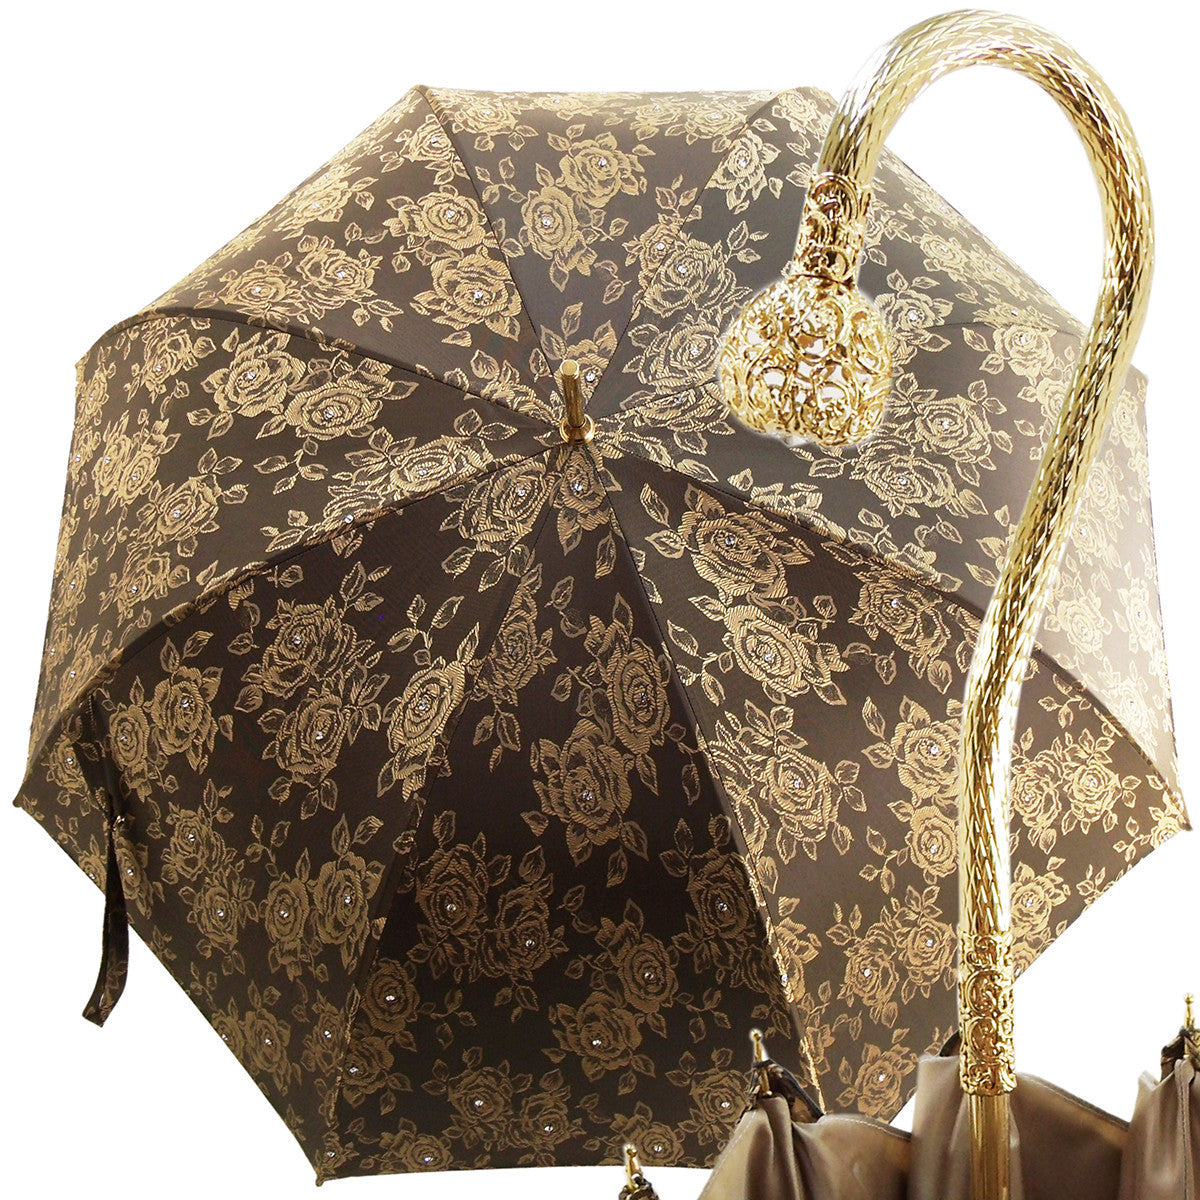 Very Beautiful Handmade Luxury Women's Umbrella - Crystals Umbrella - il-marchesato